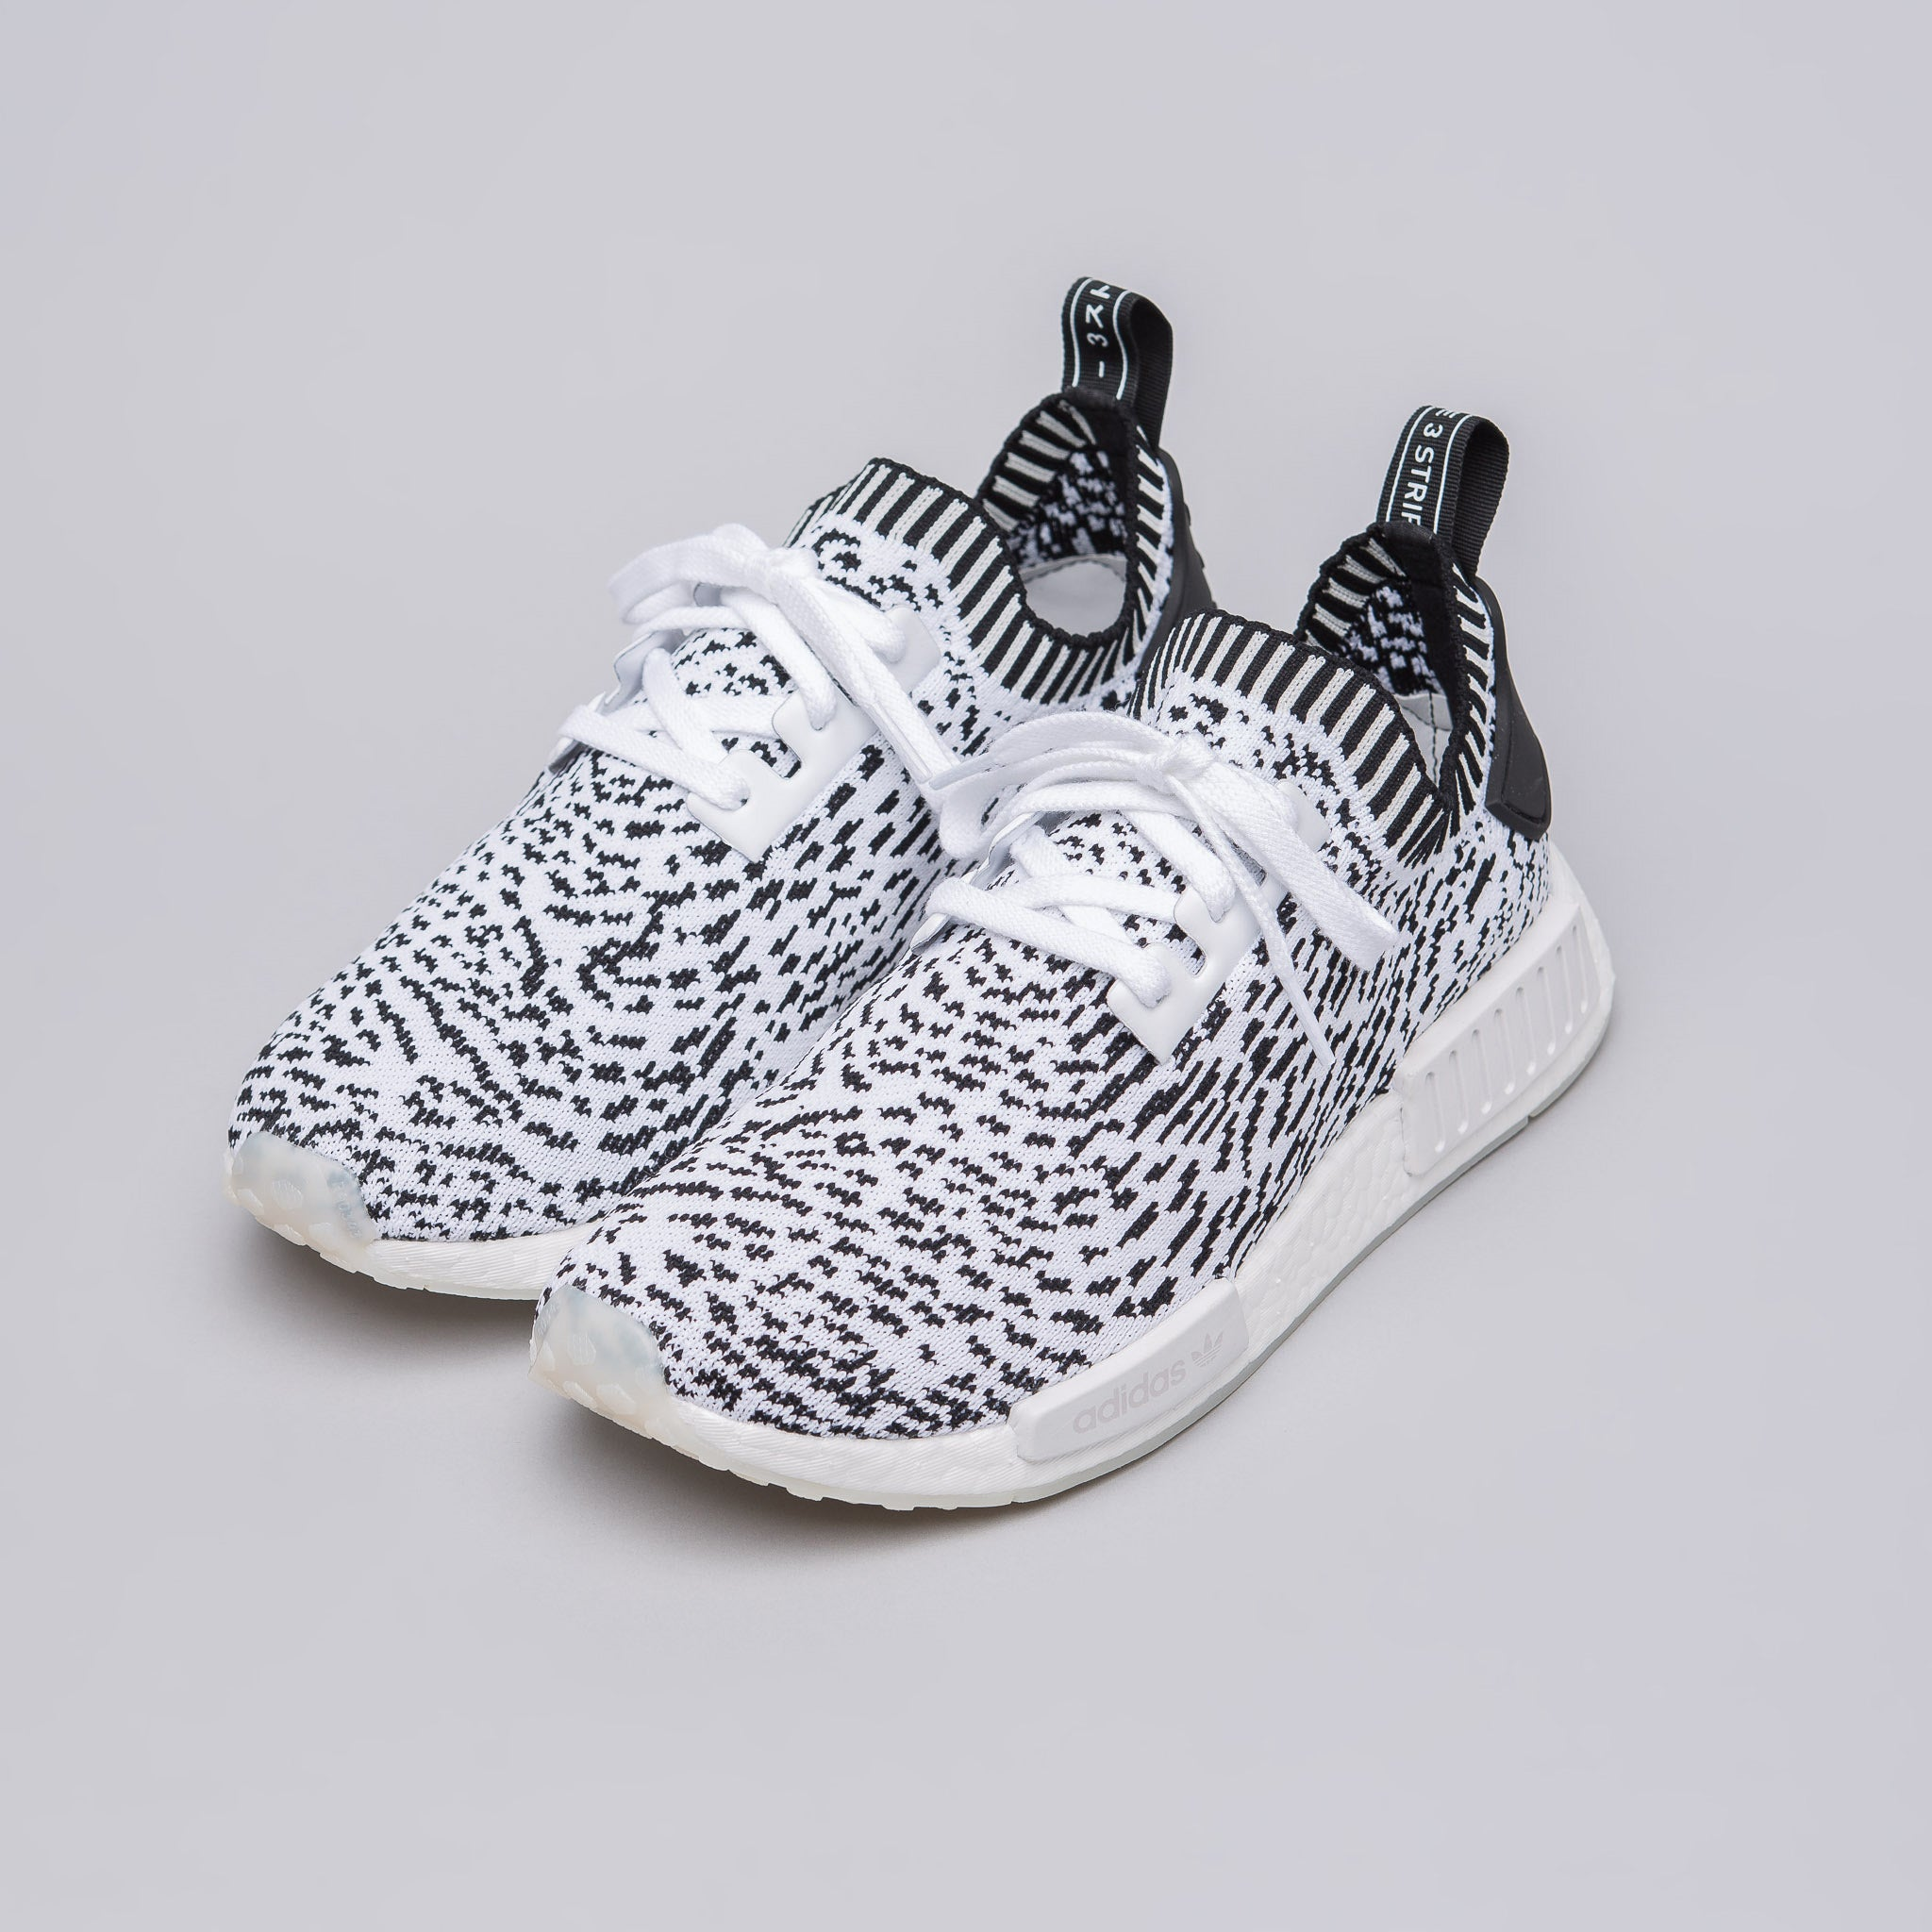 All Links to Buy Black Zebra Sashiko Pack NMD R1 Primeknit